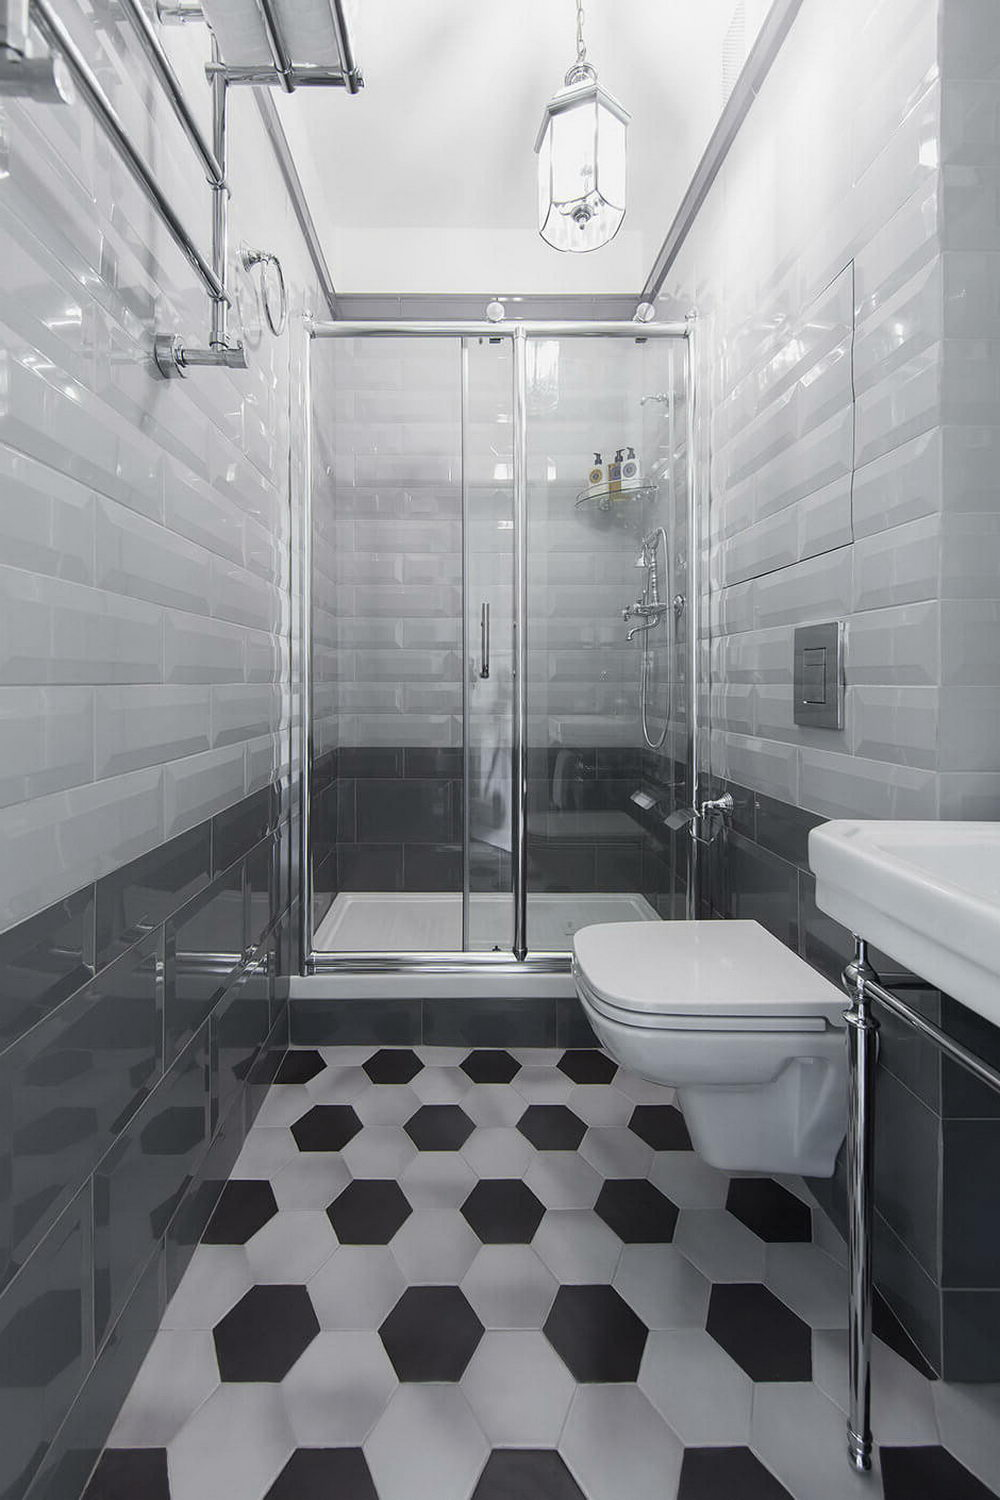 5 Best Space Saving Bathrooms Ideas For Small Bathrooms ...